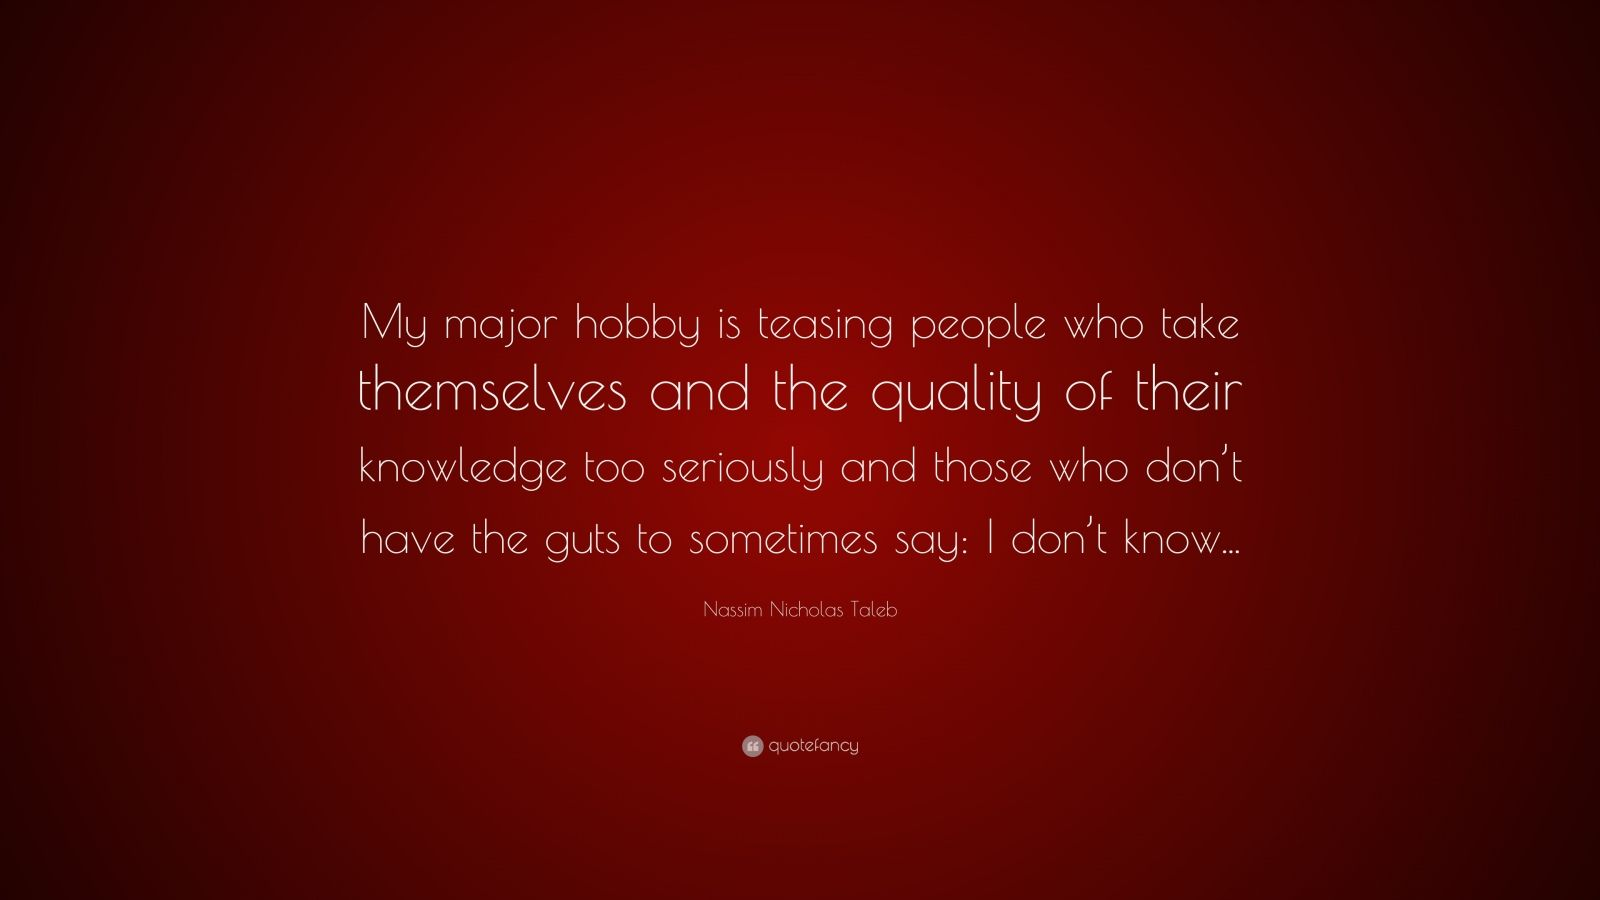 """Nassim Nicholas Taleb Quote: """"My major hobby is teasing people who take themselves and the quality of their knowledge too seriously and those who don't have the guts to sometimes say: I don't know..."""""""